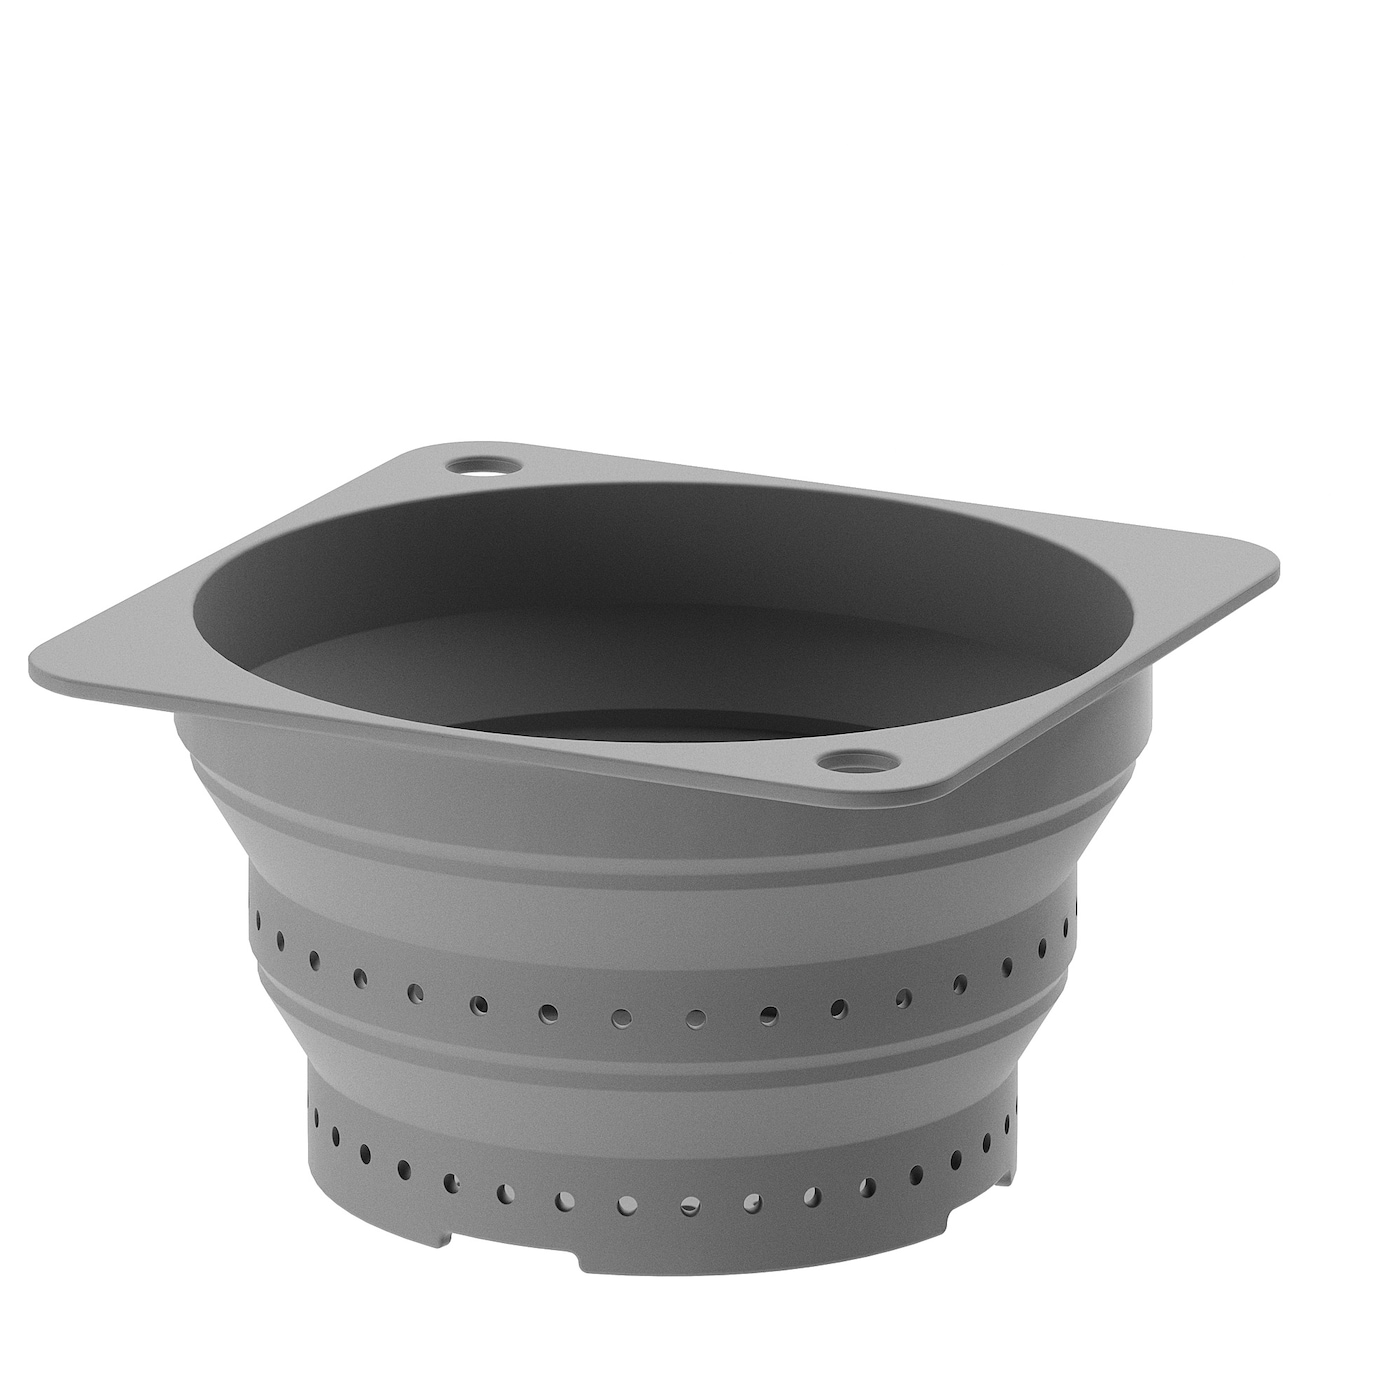 IKEA KLOCKREN colander A stable bottom edge ensures that the colander stands steady.